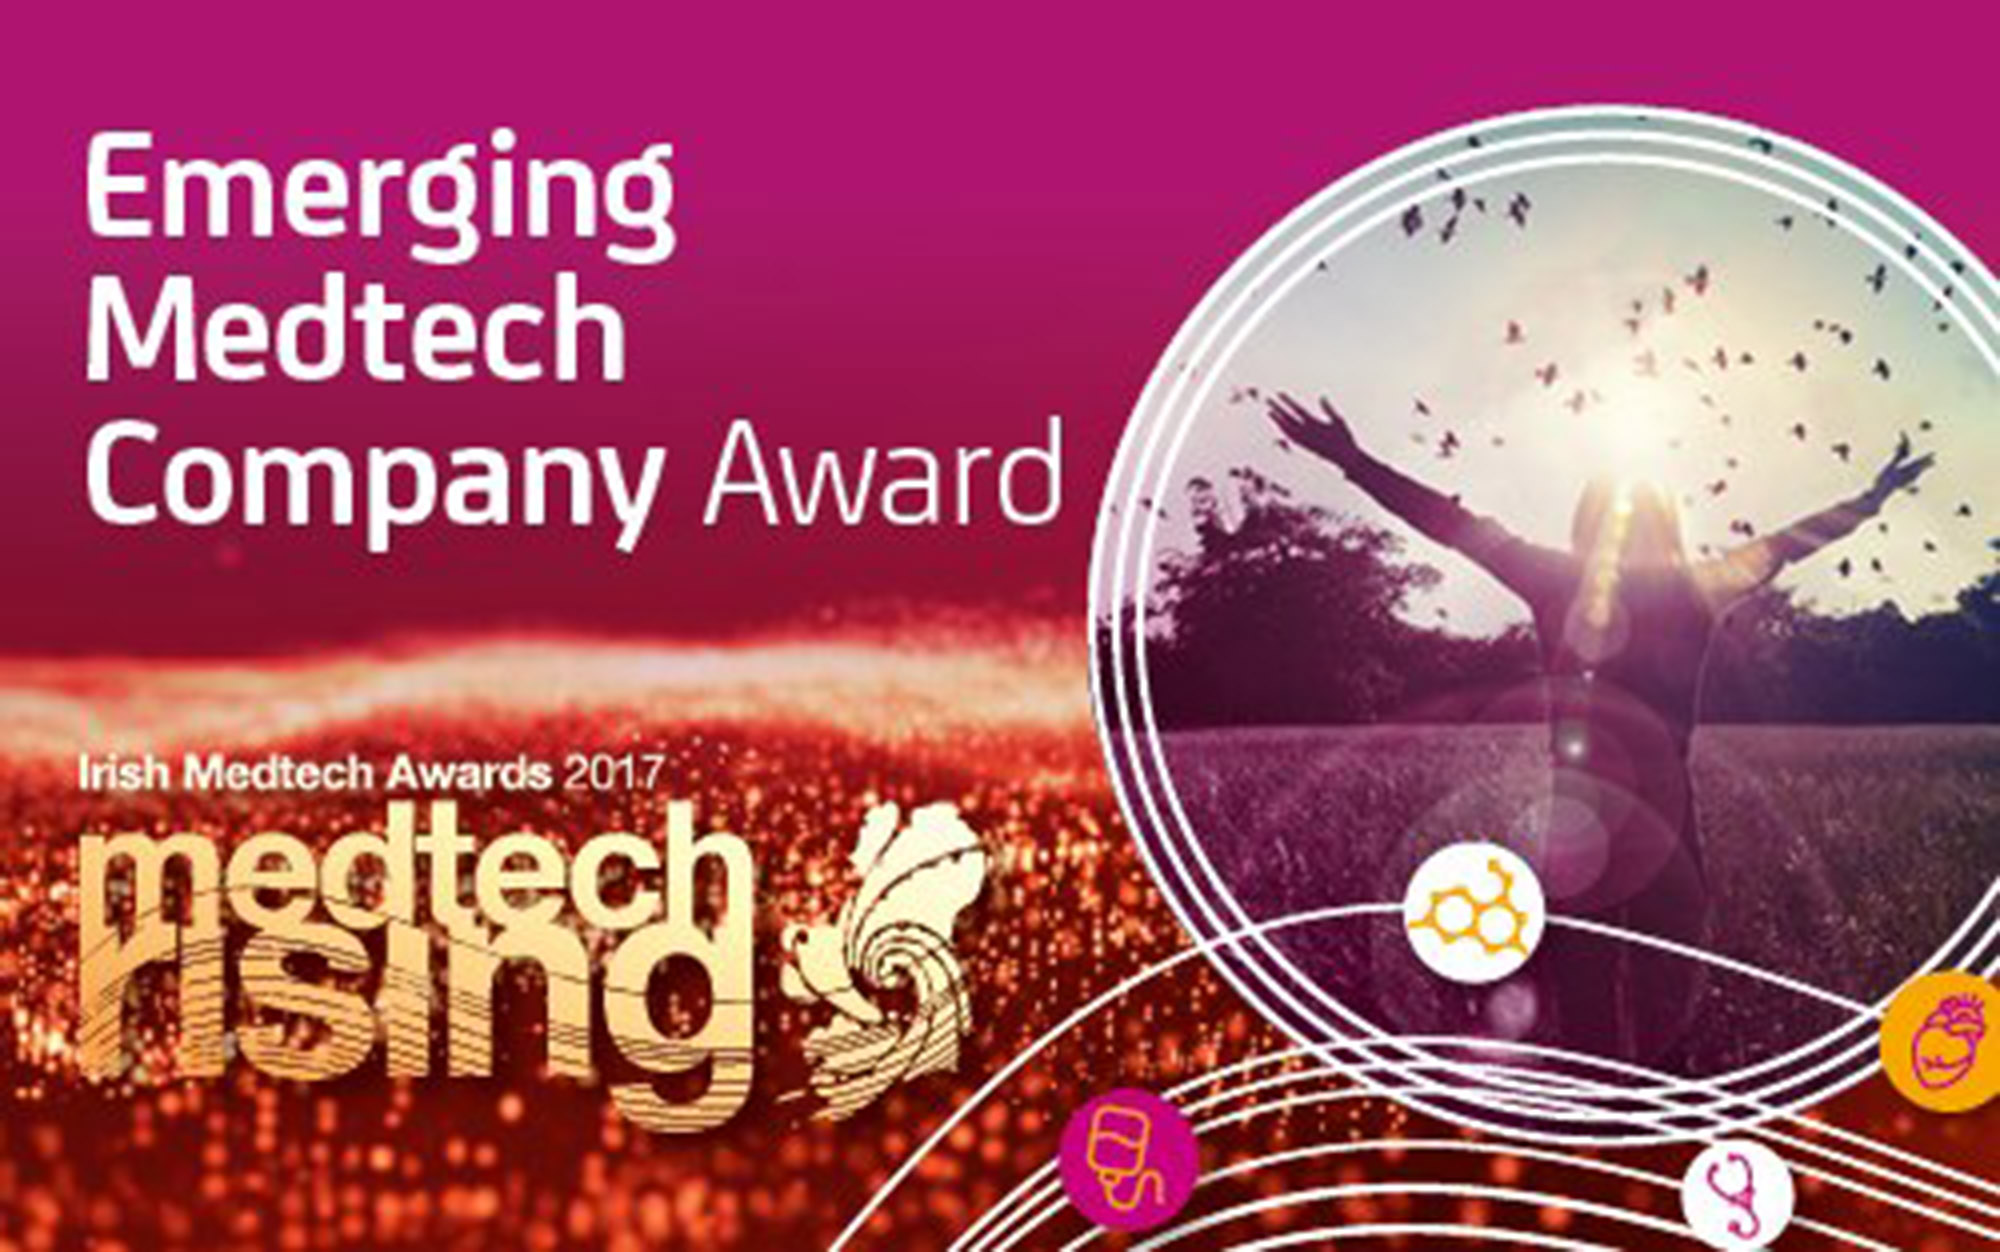 Loci Orthopaedics among the finalists for the Emerging Medtech Company of the Year award.